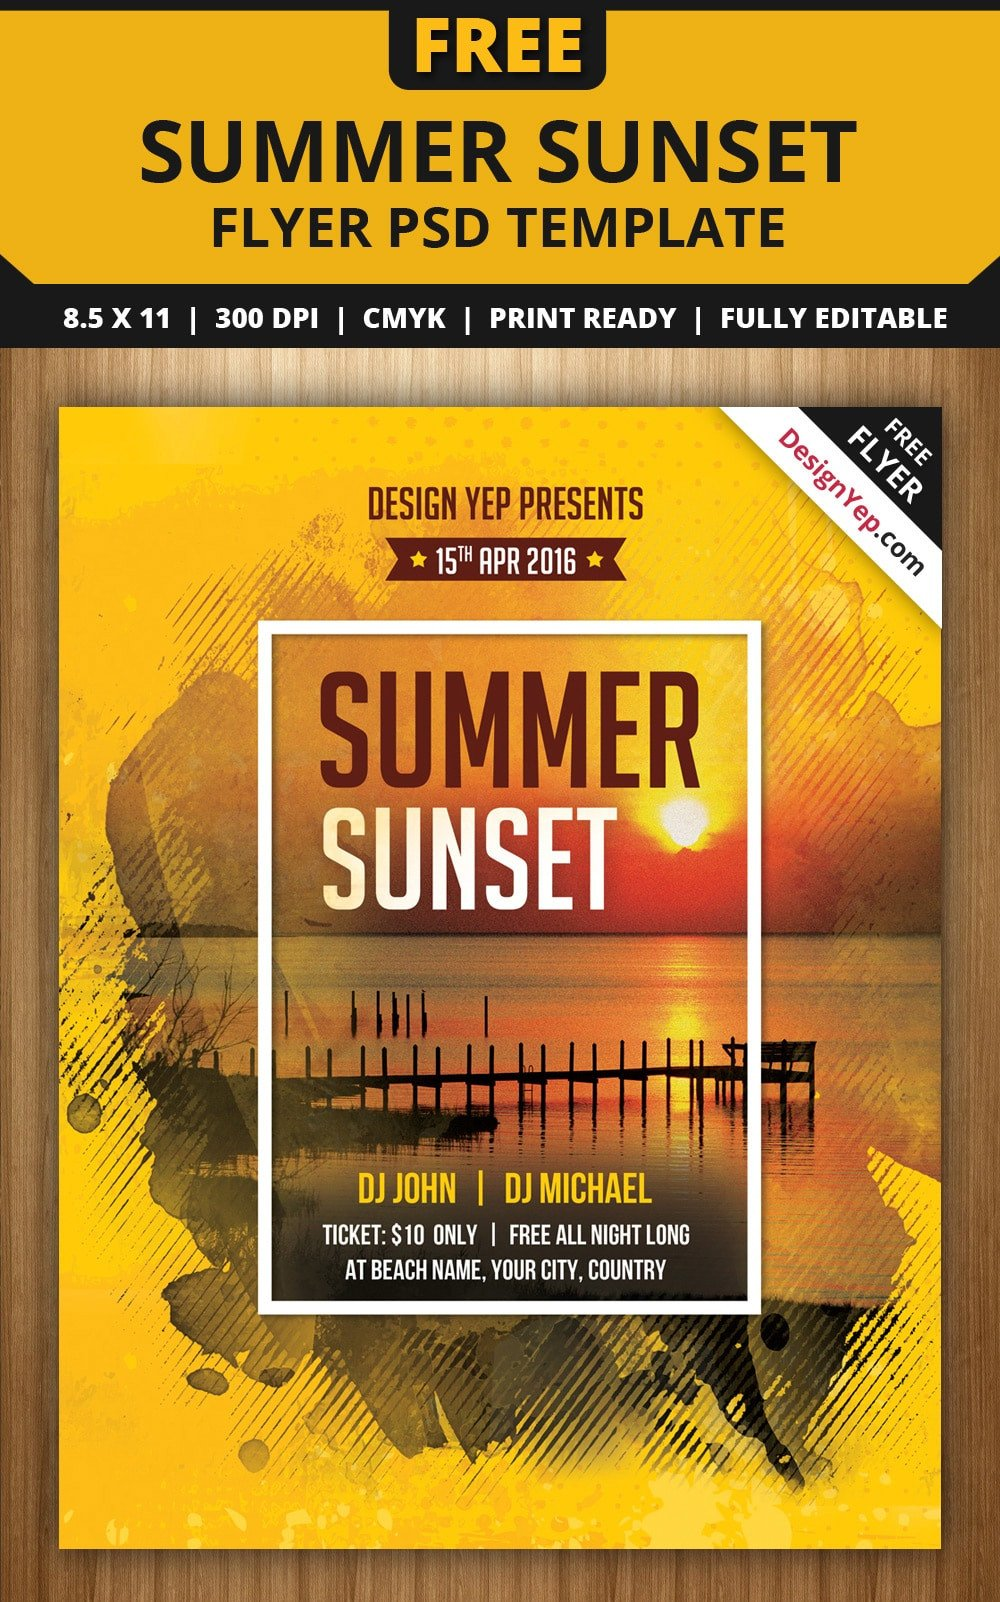 Free Templates for Flyers Free Flyer Templates Psd From 2016 Css Author